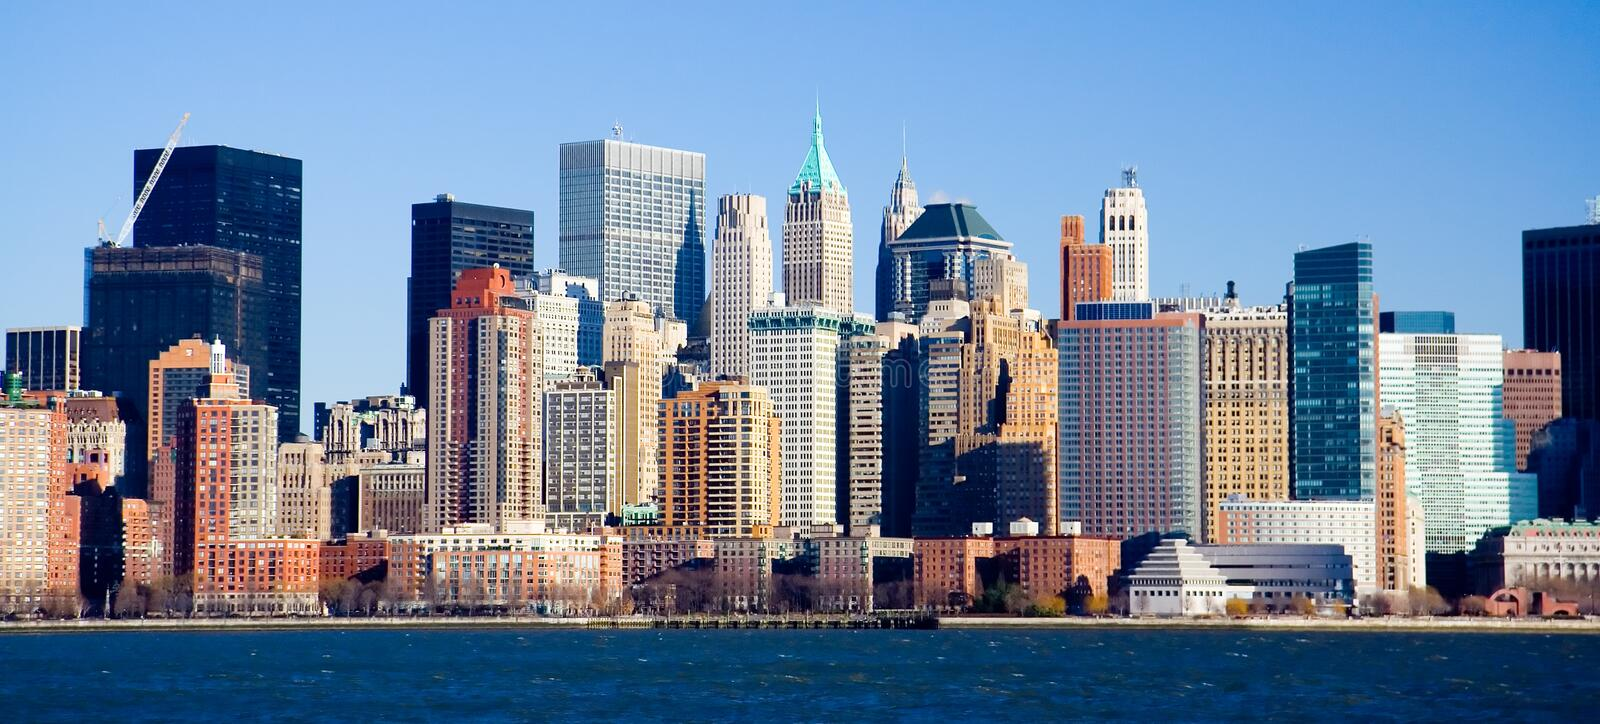 Skyline de Manhattan fotografia de stock royalty free